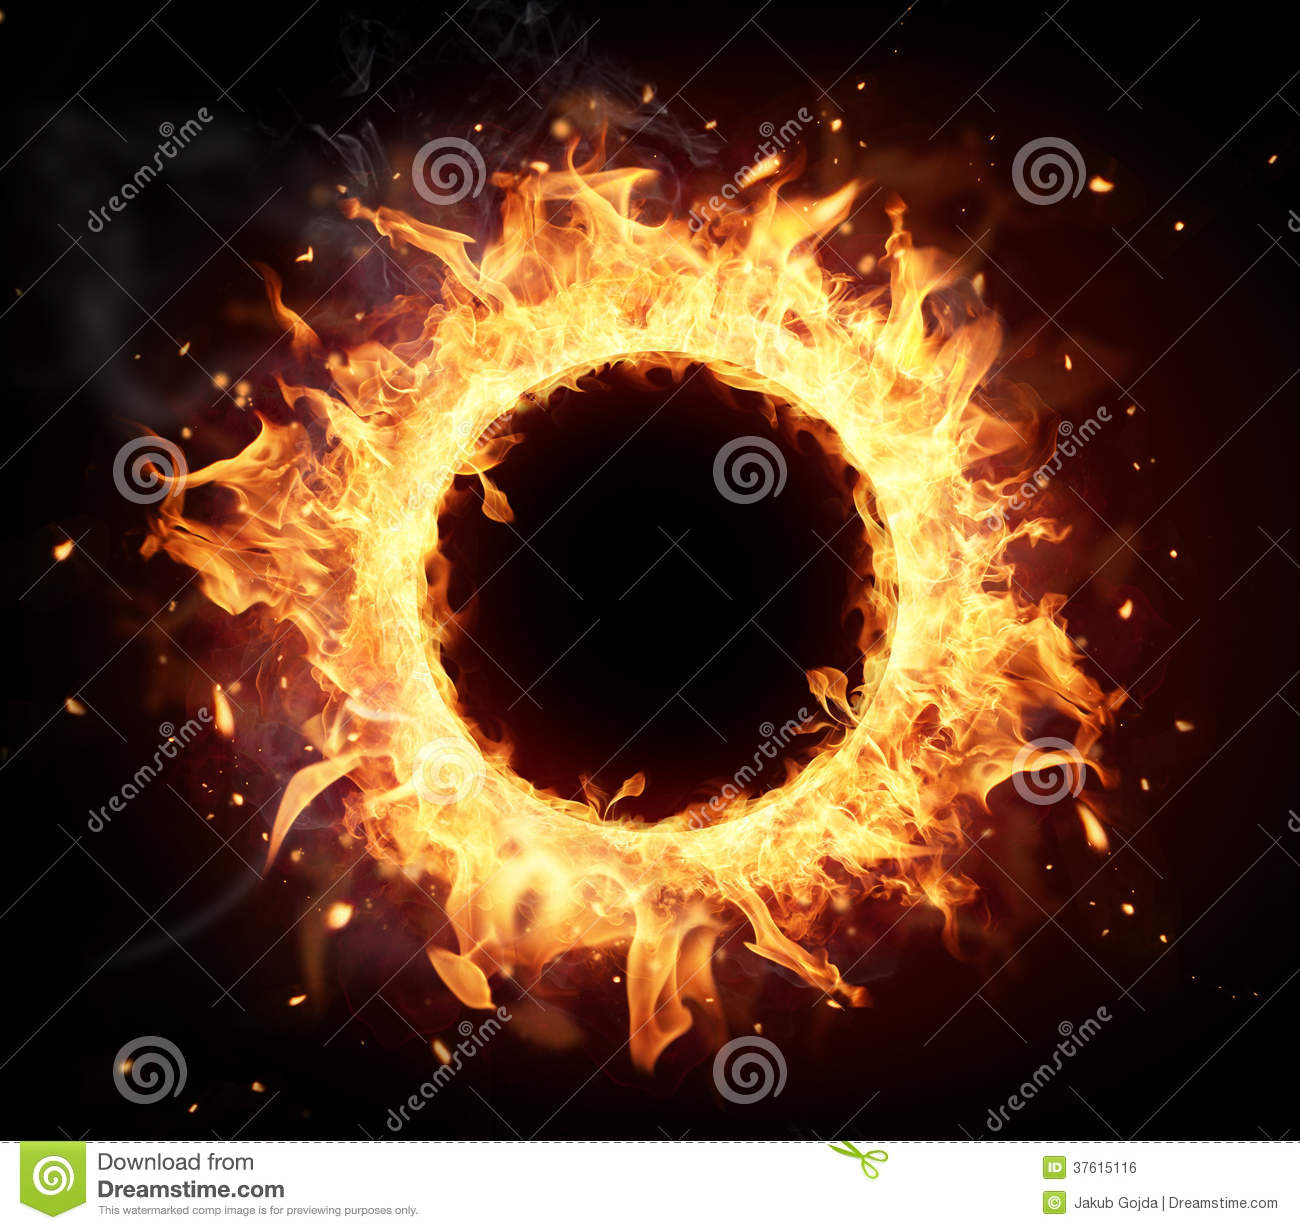 Fire circle with free space for text. isolated on black background.